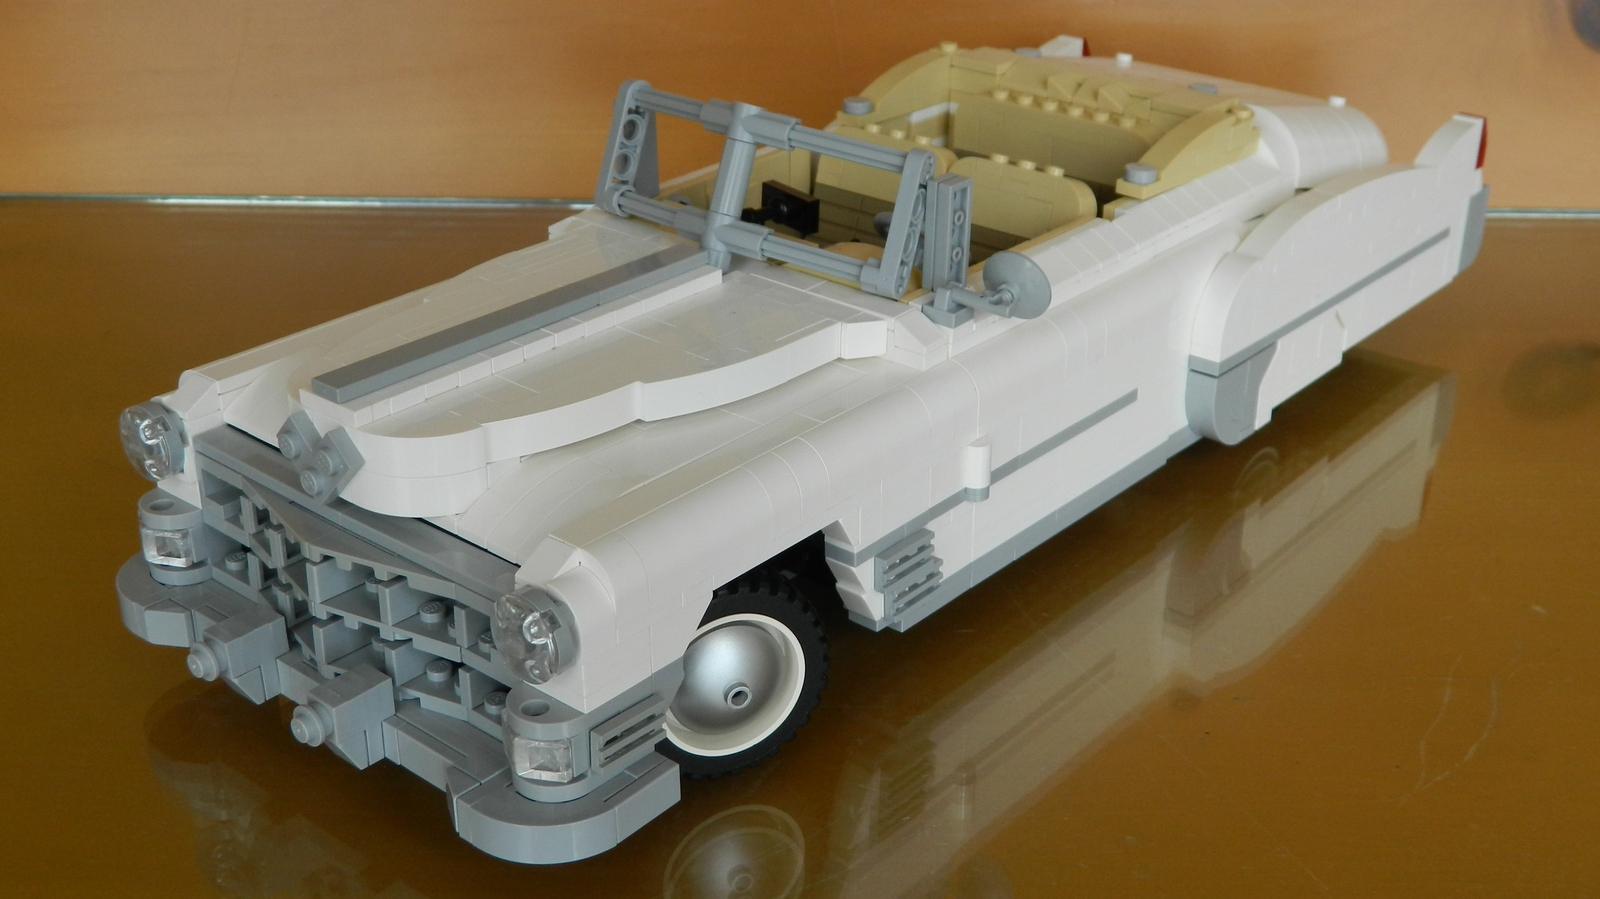 Lego Ideas Product 1949 Cadillac Series 62 Convertible V8 Engine